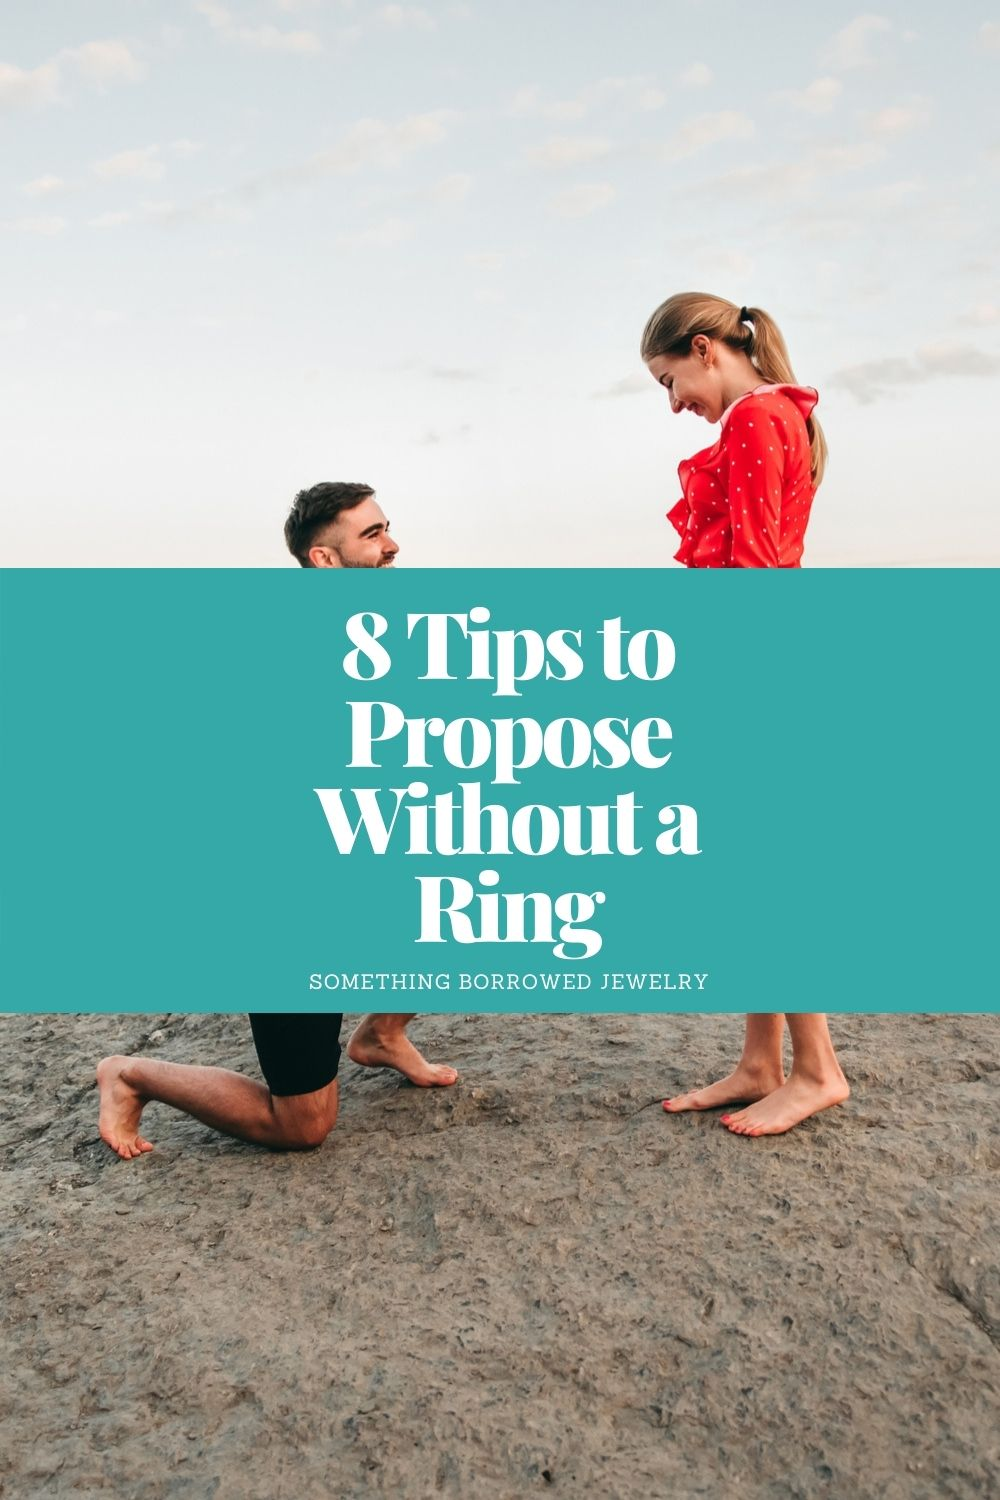 8 Tips to Propose Without a Ring pin